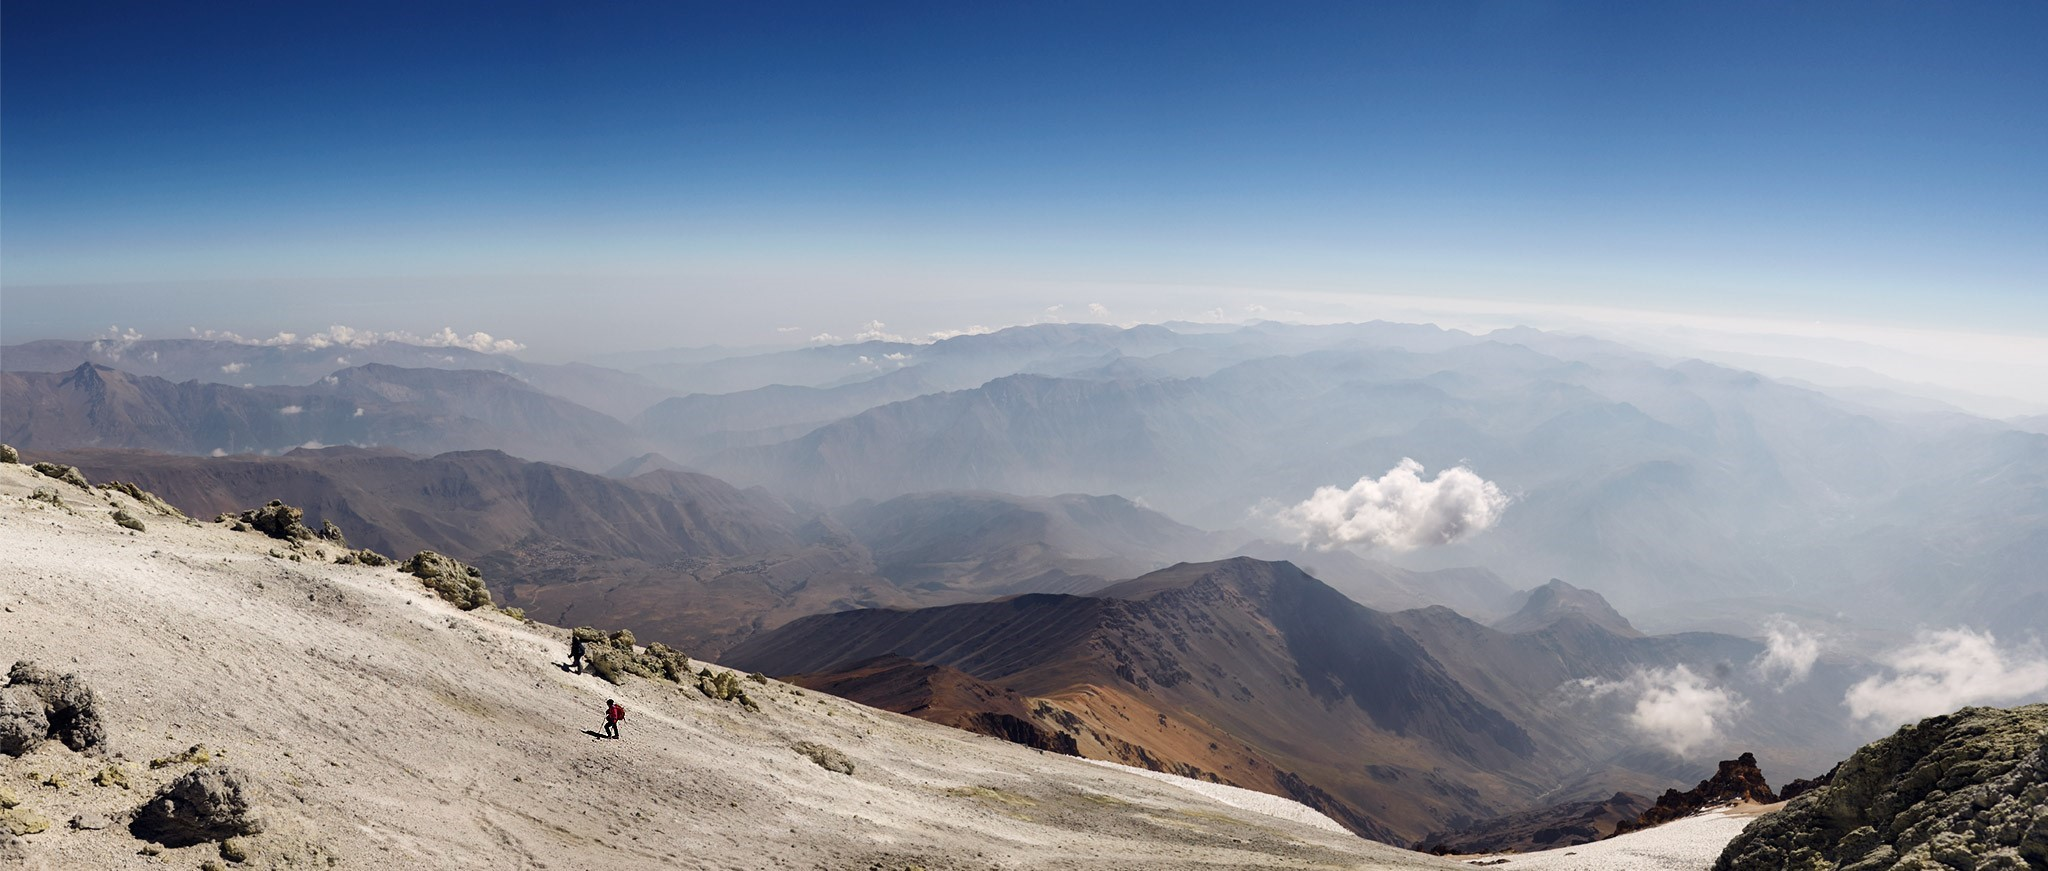 The view from the top (5671m) shows that the earth is round (see the horizon), Mt. Damavand, Iran